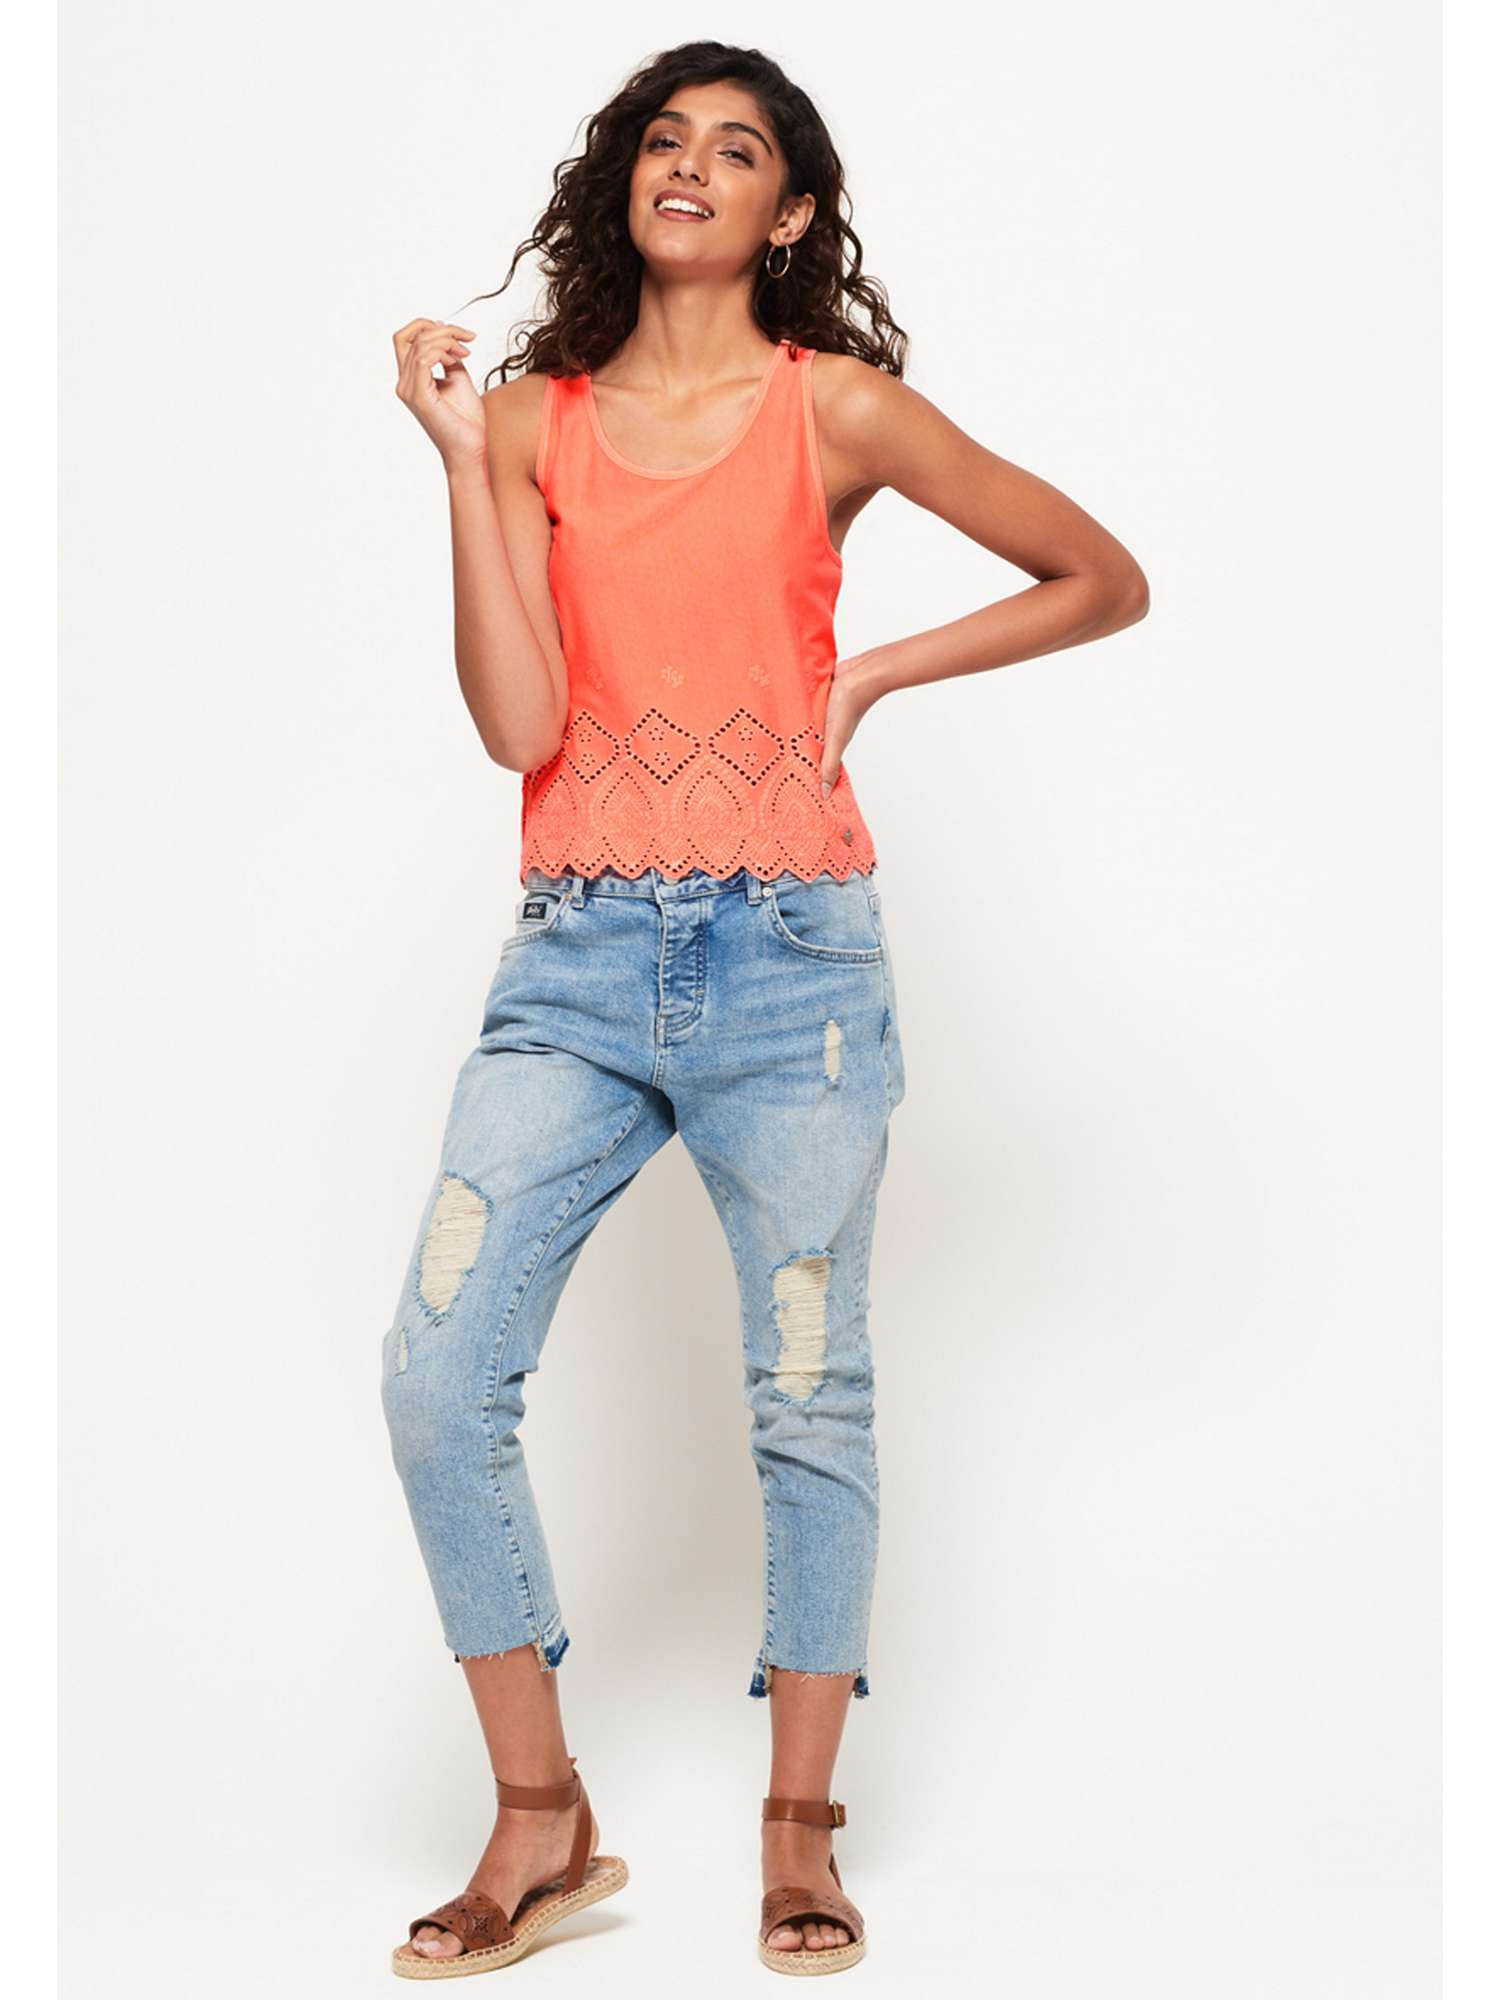 Broderie Pacific Pacific Superdry Broderie Broderie Tank Pacific Top Top Tank Superdry Superdry q6IAw